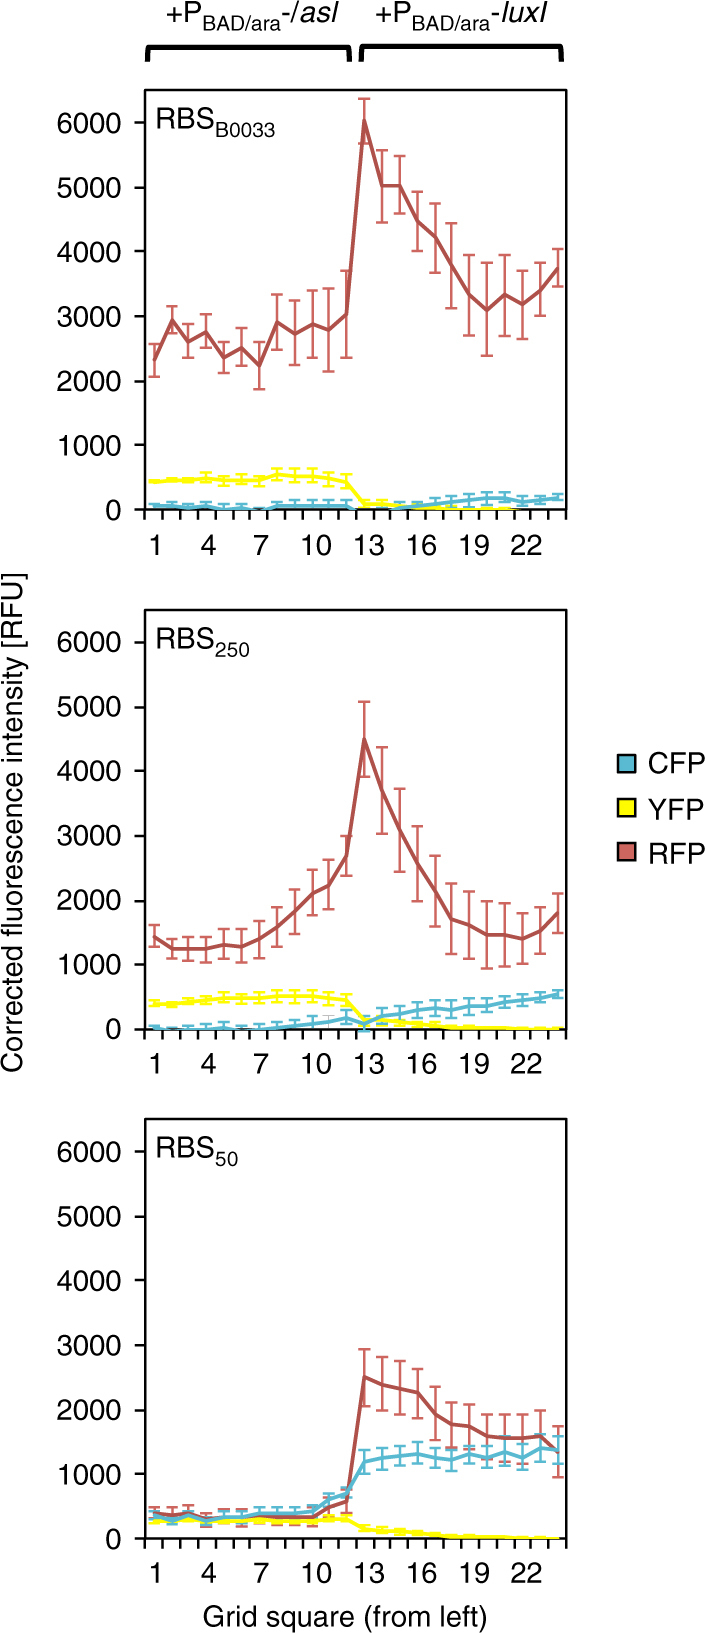 Programmed emergence of an RFP-expressing domain across bacterial populations. TOP10 E . coli were co-transformed by the RFP reporter plasmid p4g3R, a bicistronic controller plasmid pCRB DRT7VTPLux*(500/250/50), and a sender plasmid pSB1C3 I0500 (LuxI/LasI) encoding either luxI or lasI under control of the arabinose-inducible P BAD/araC promoter. Adjacent populations of the different triple-transformed cell types were incubated on membranes placed on minimal nutrient agar which has or has not been supplemented with 25 mM arabinose. Fluorescence intensity of each quadrant at t = 3000 min (time relative to start of incubation), corrected for background signal present in the absence of arabinose, is plotted against position (genotype boundary between quadrants 12 and 13). Error bars represent the s.d. of average values between the 12 equidistant quadrants on each membrane. Corresponding images captured at t = 3000 min are shown in Supplementary Figure 11